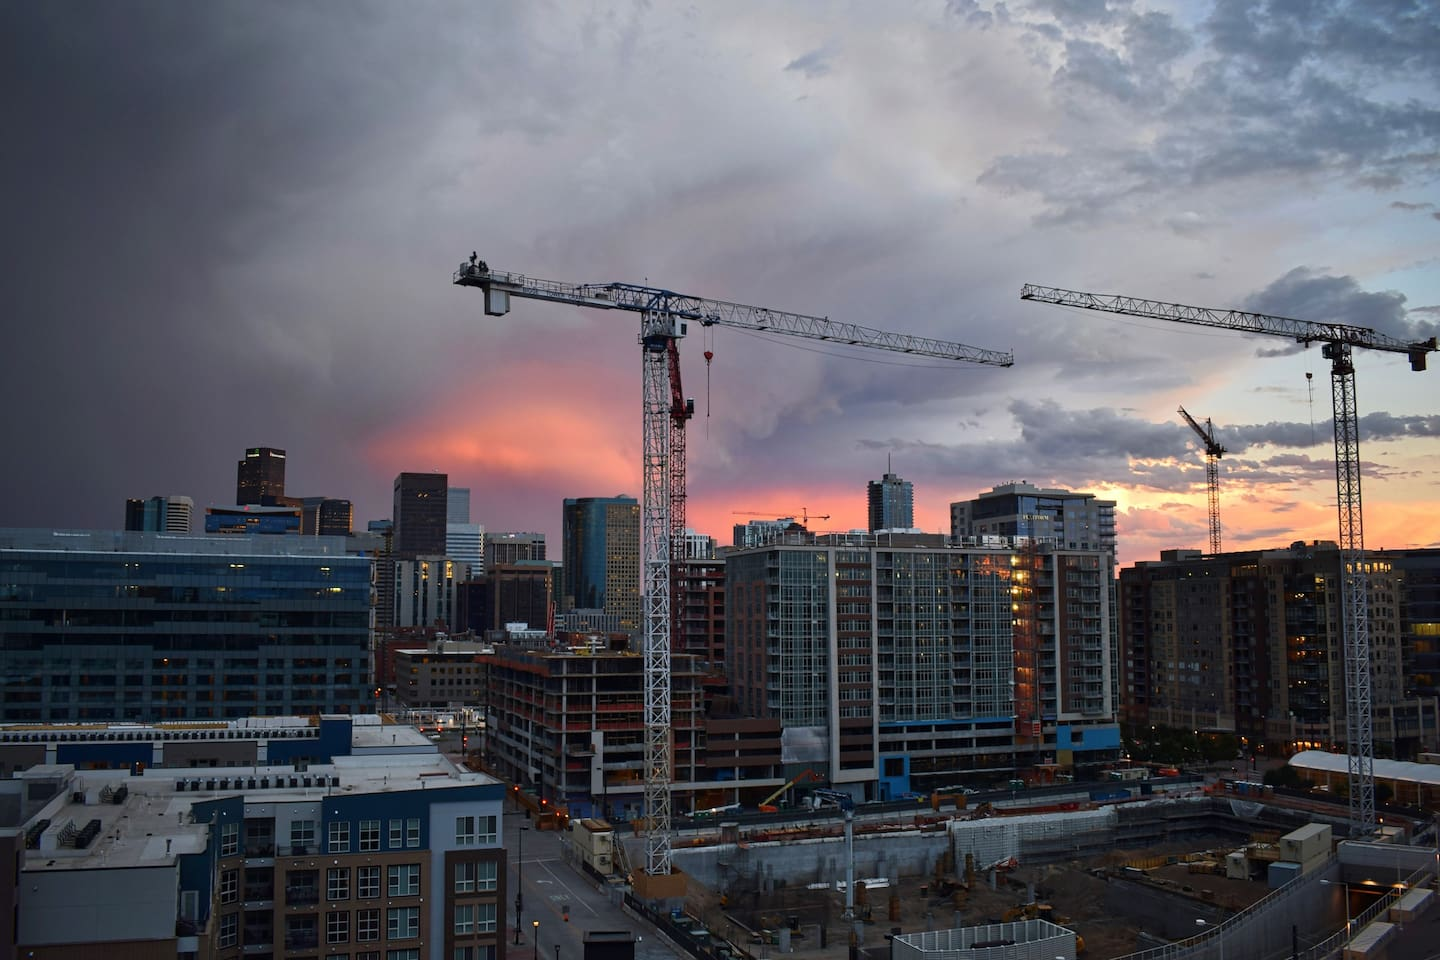 Beautiful Denver sunset taken from your balcony!